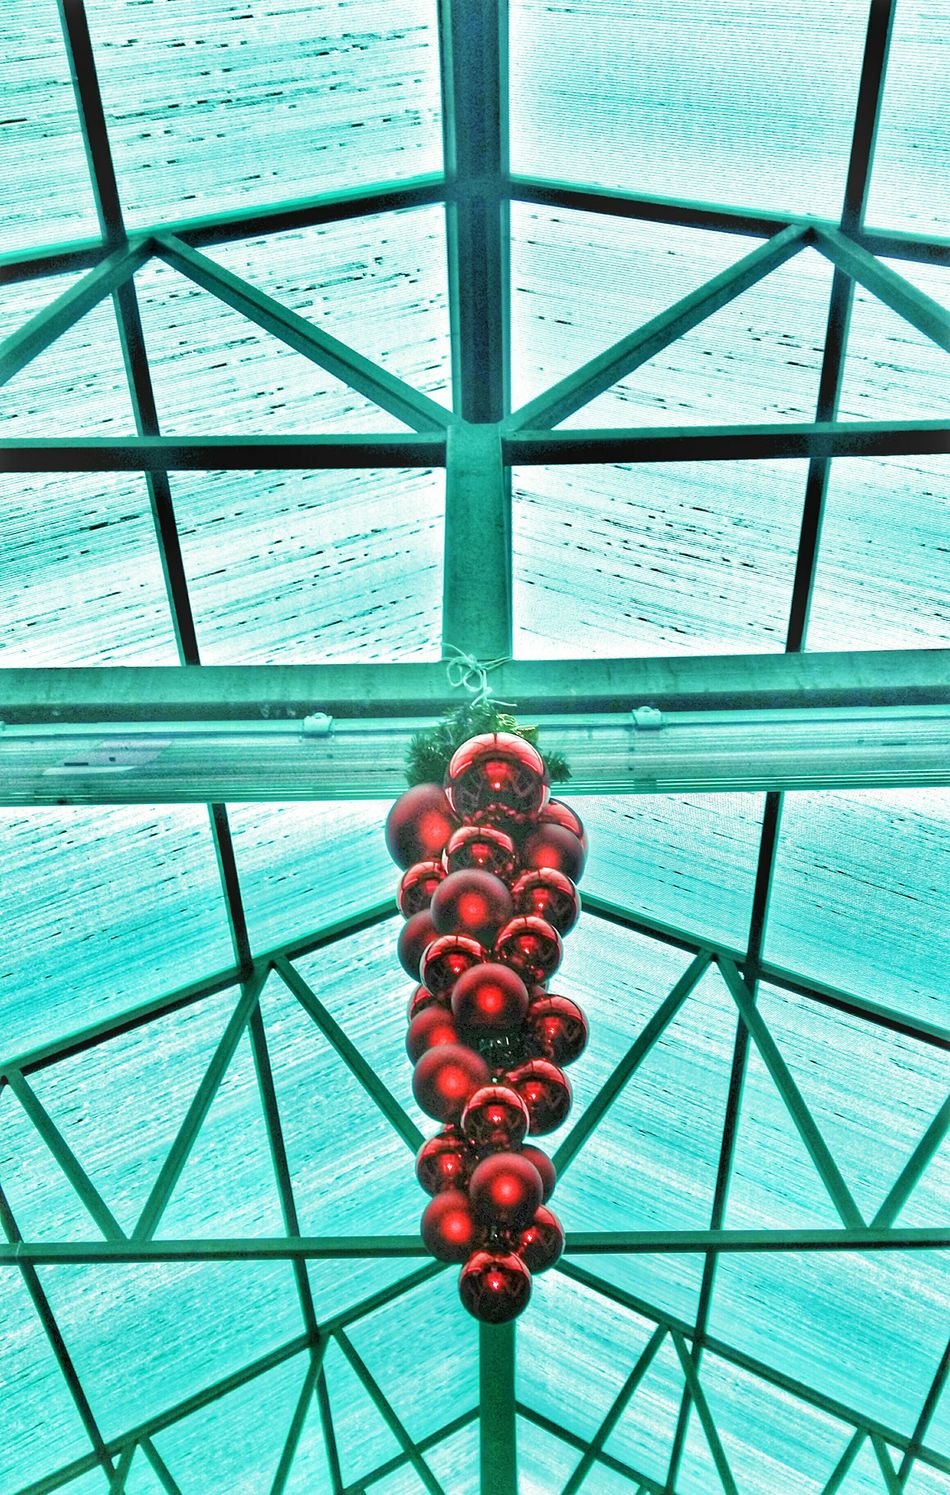 Looking At The Ceiling Ceiling Design Let's Do It Chic! Walking Around Pastel Open Edit Life In Colors Showing Why I Could Be An Open Editor Cleaning My Account At EyeEm Taking Photos Beatiful Cristmas Decoration Design Streetphotography Walking Around The City  Shopping Center